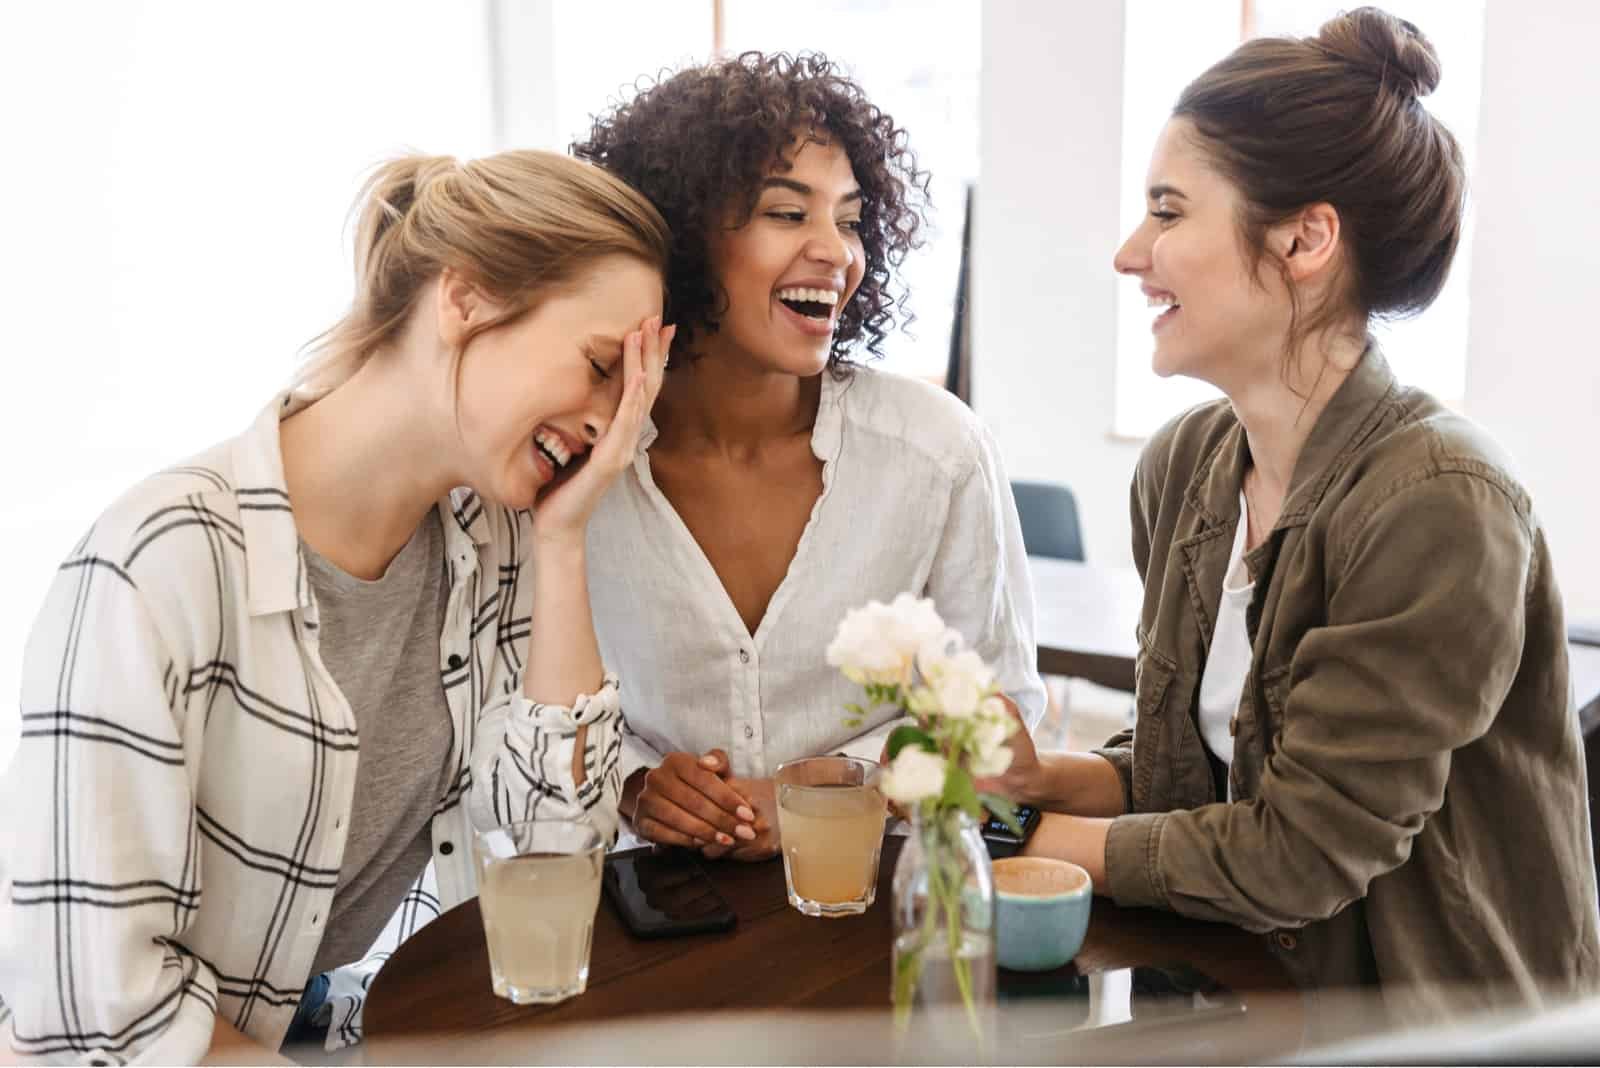 friends sit at the table and laugh